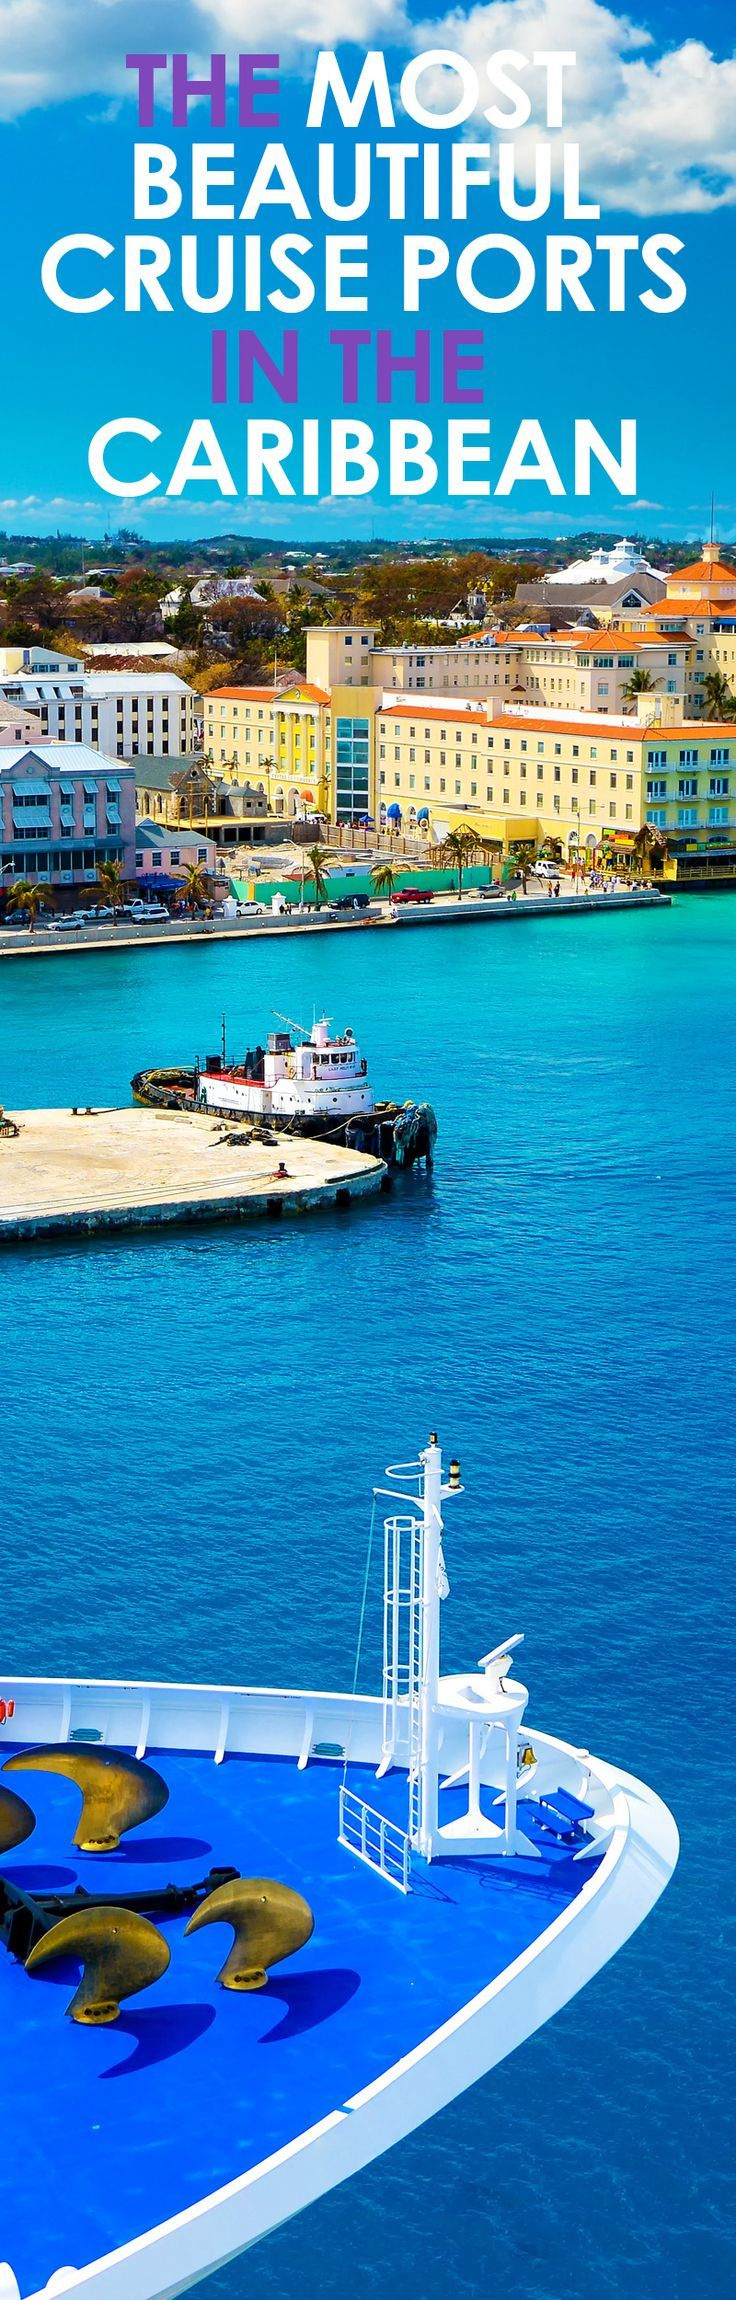 17 Best Ideas About Cruise Ships On Pinterest Carnival